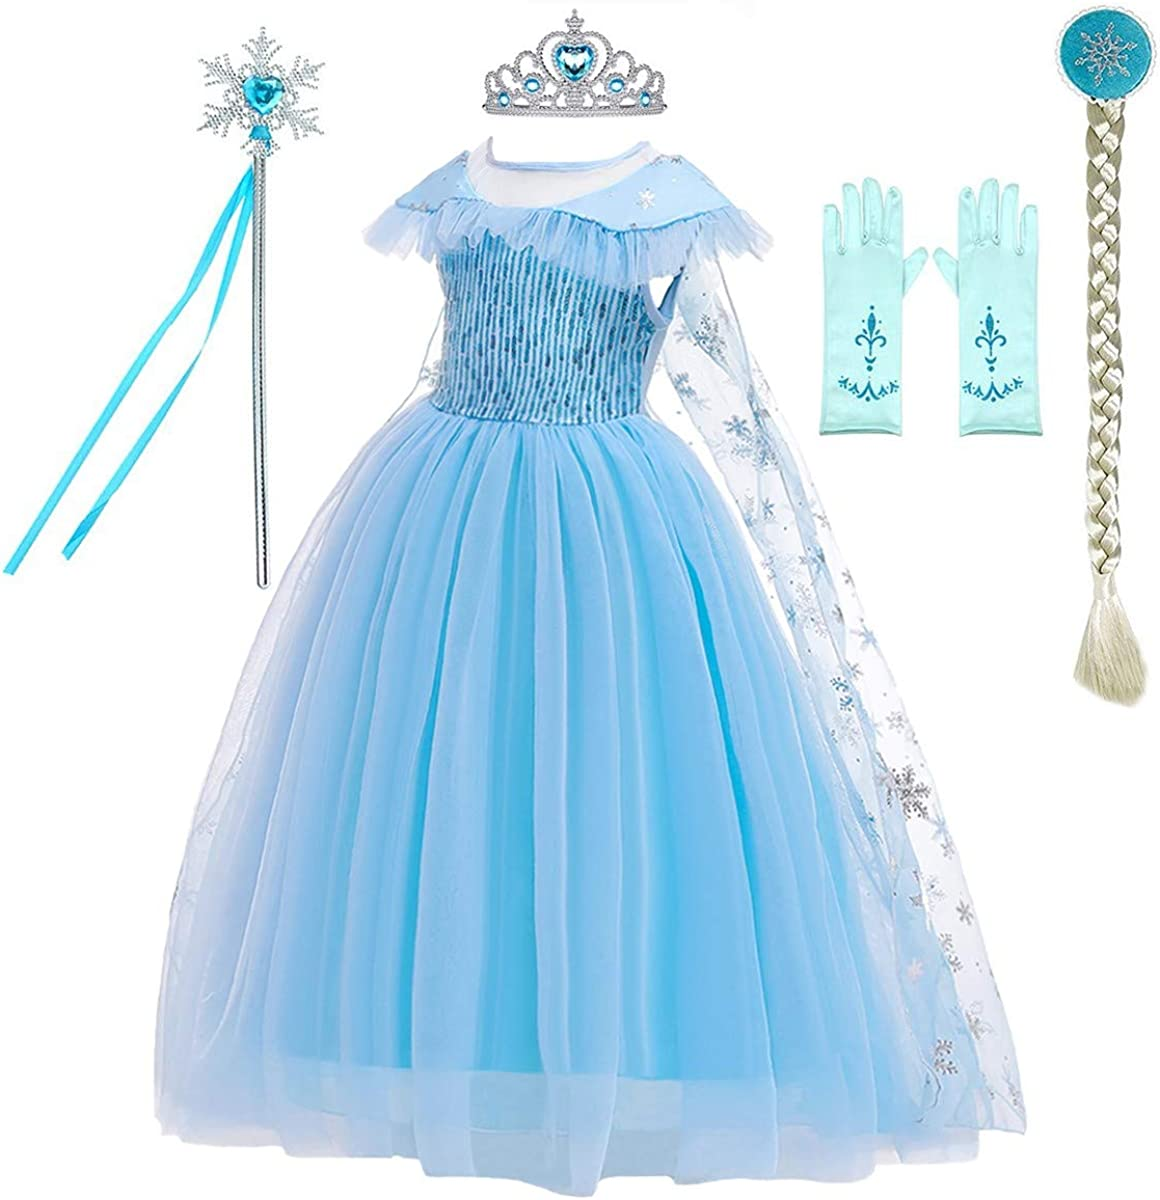 1pc Kids Frozen Queen Princess Anna Dress Girls Birthday Summer Skirt